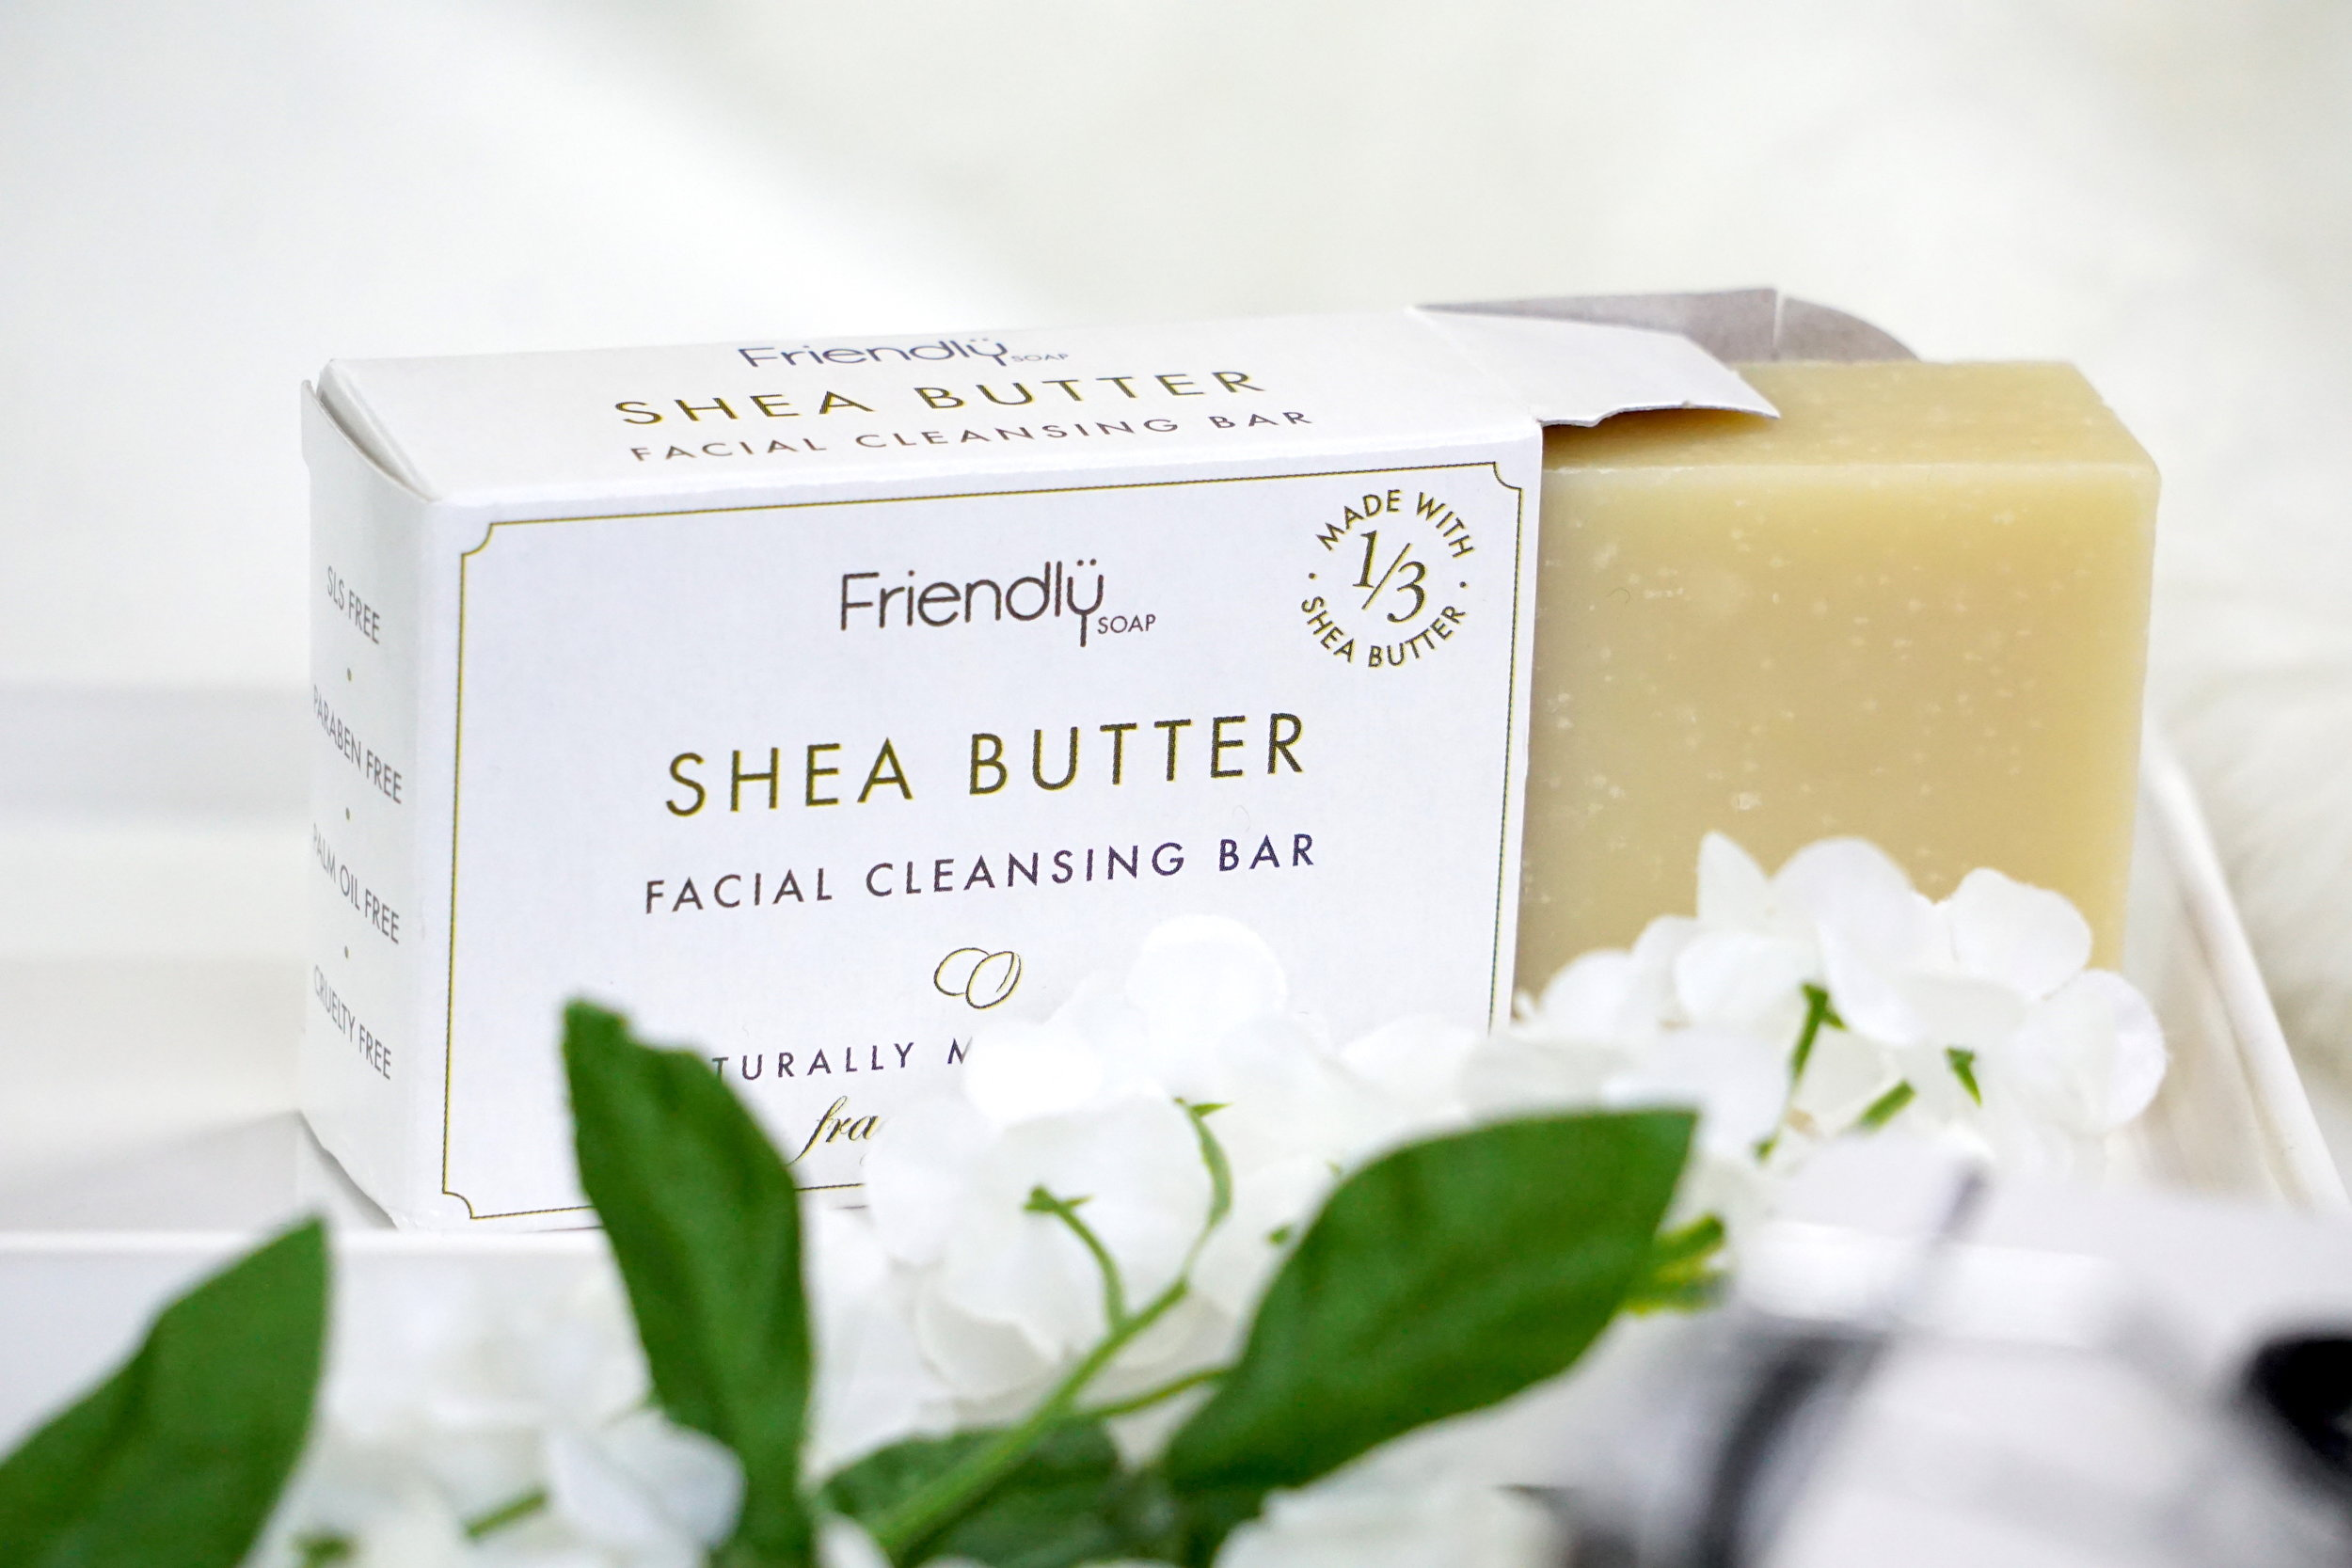 Friendly Soap Shea-Butter - I love soap, it's such a simple product that always works wonders for me. I think an old classic sometimes works best and this shea butter soap is definitely something I'll make use of. Their packaging is 100% plastic free, too!